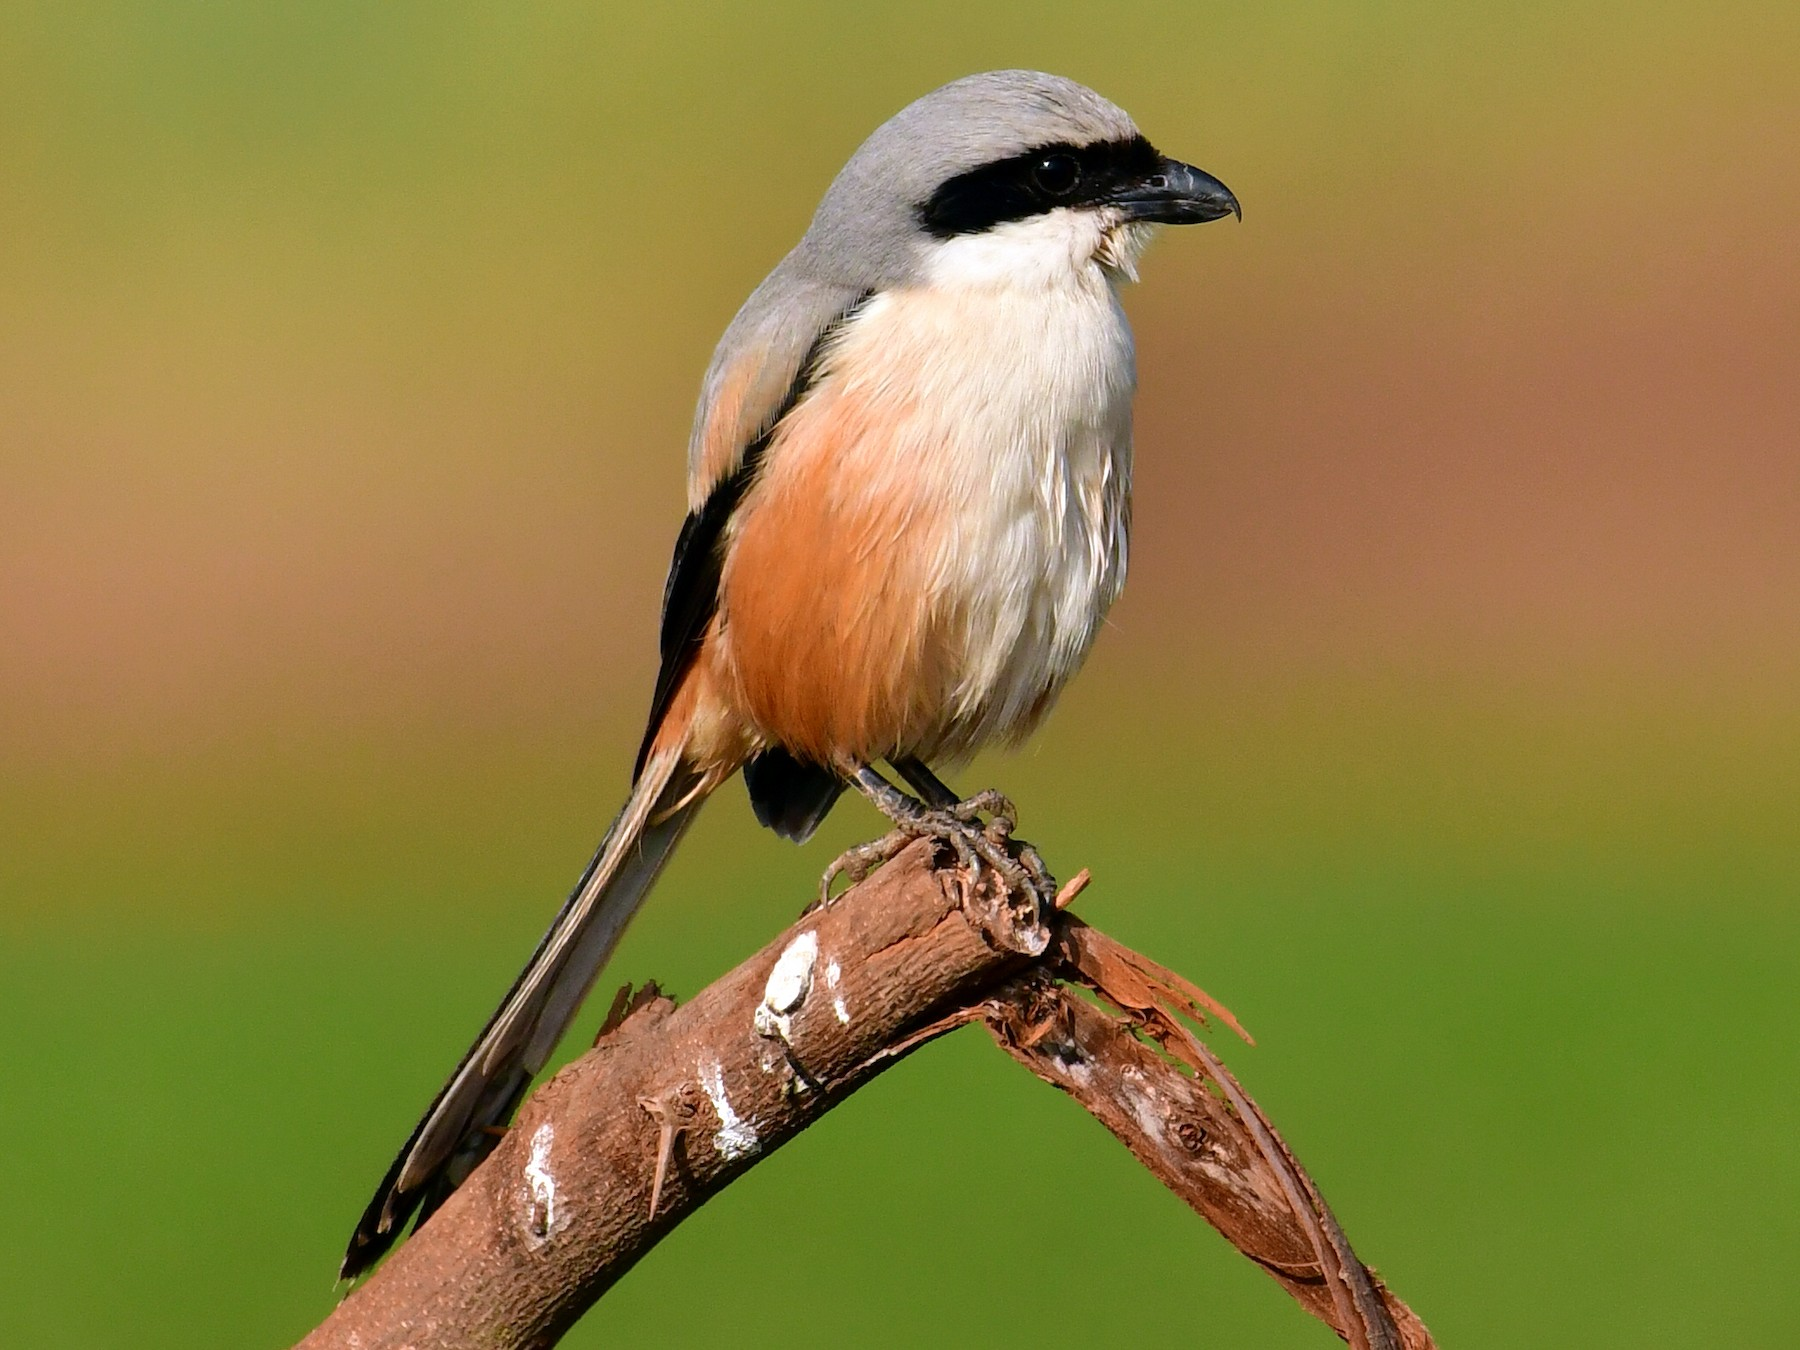 Long-tailed Shrike - Anirudh Kamakeri